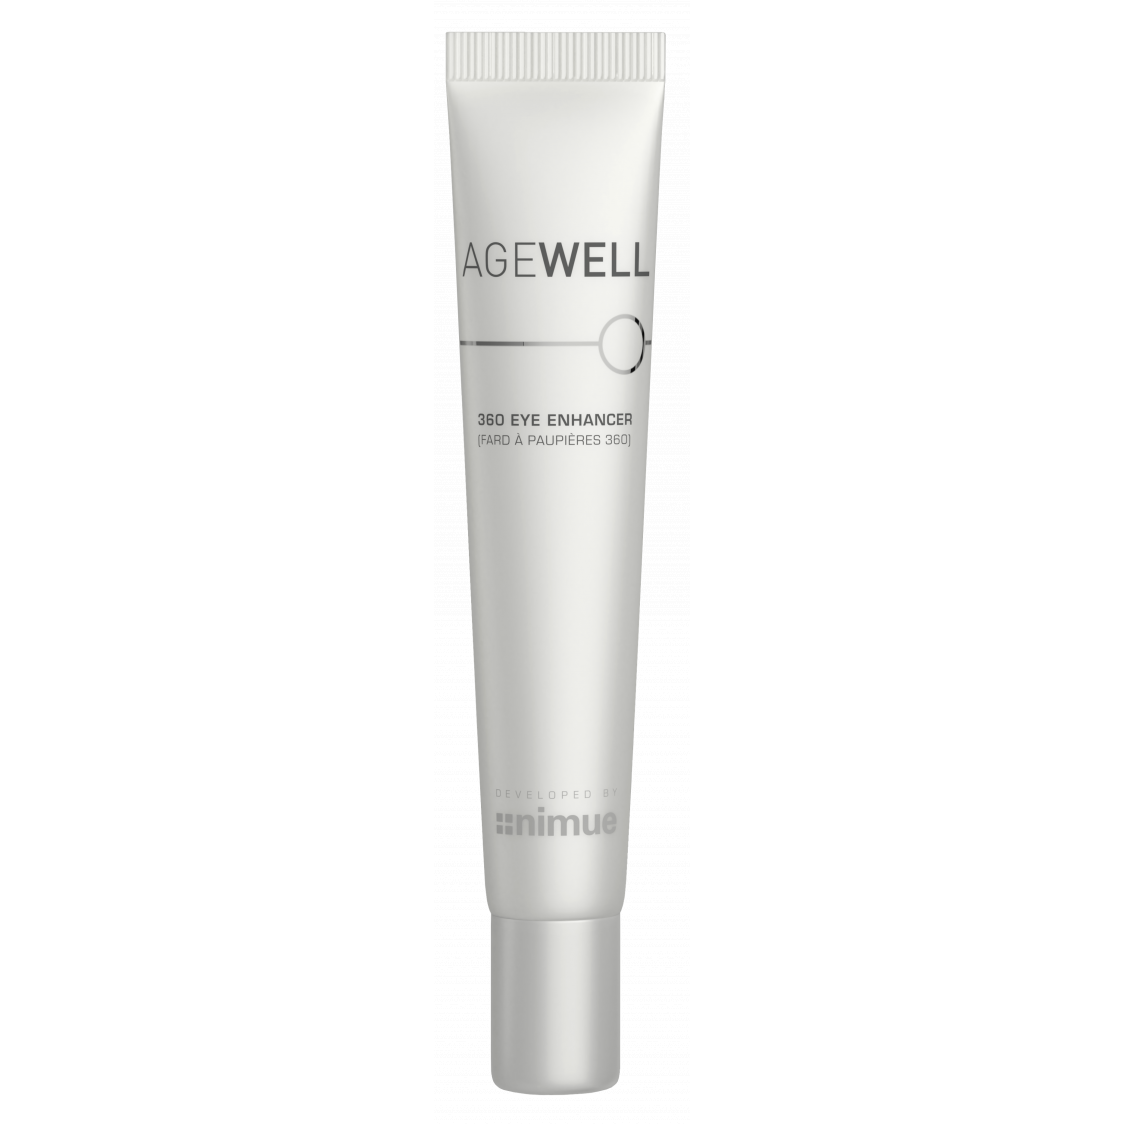 Agewell - 360 Eye Enhancer 15ml